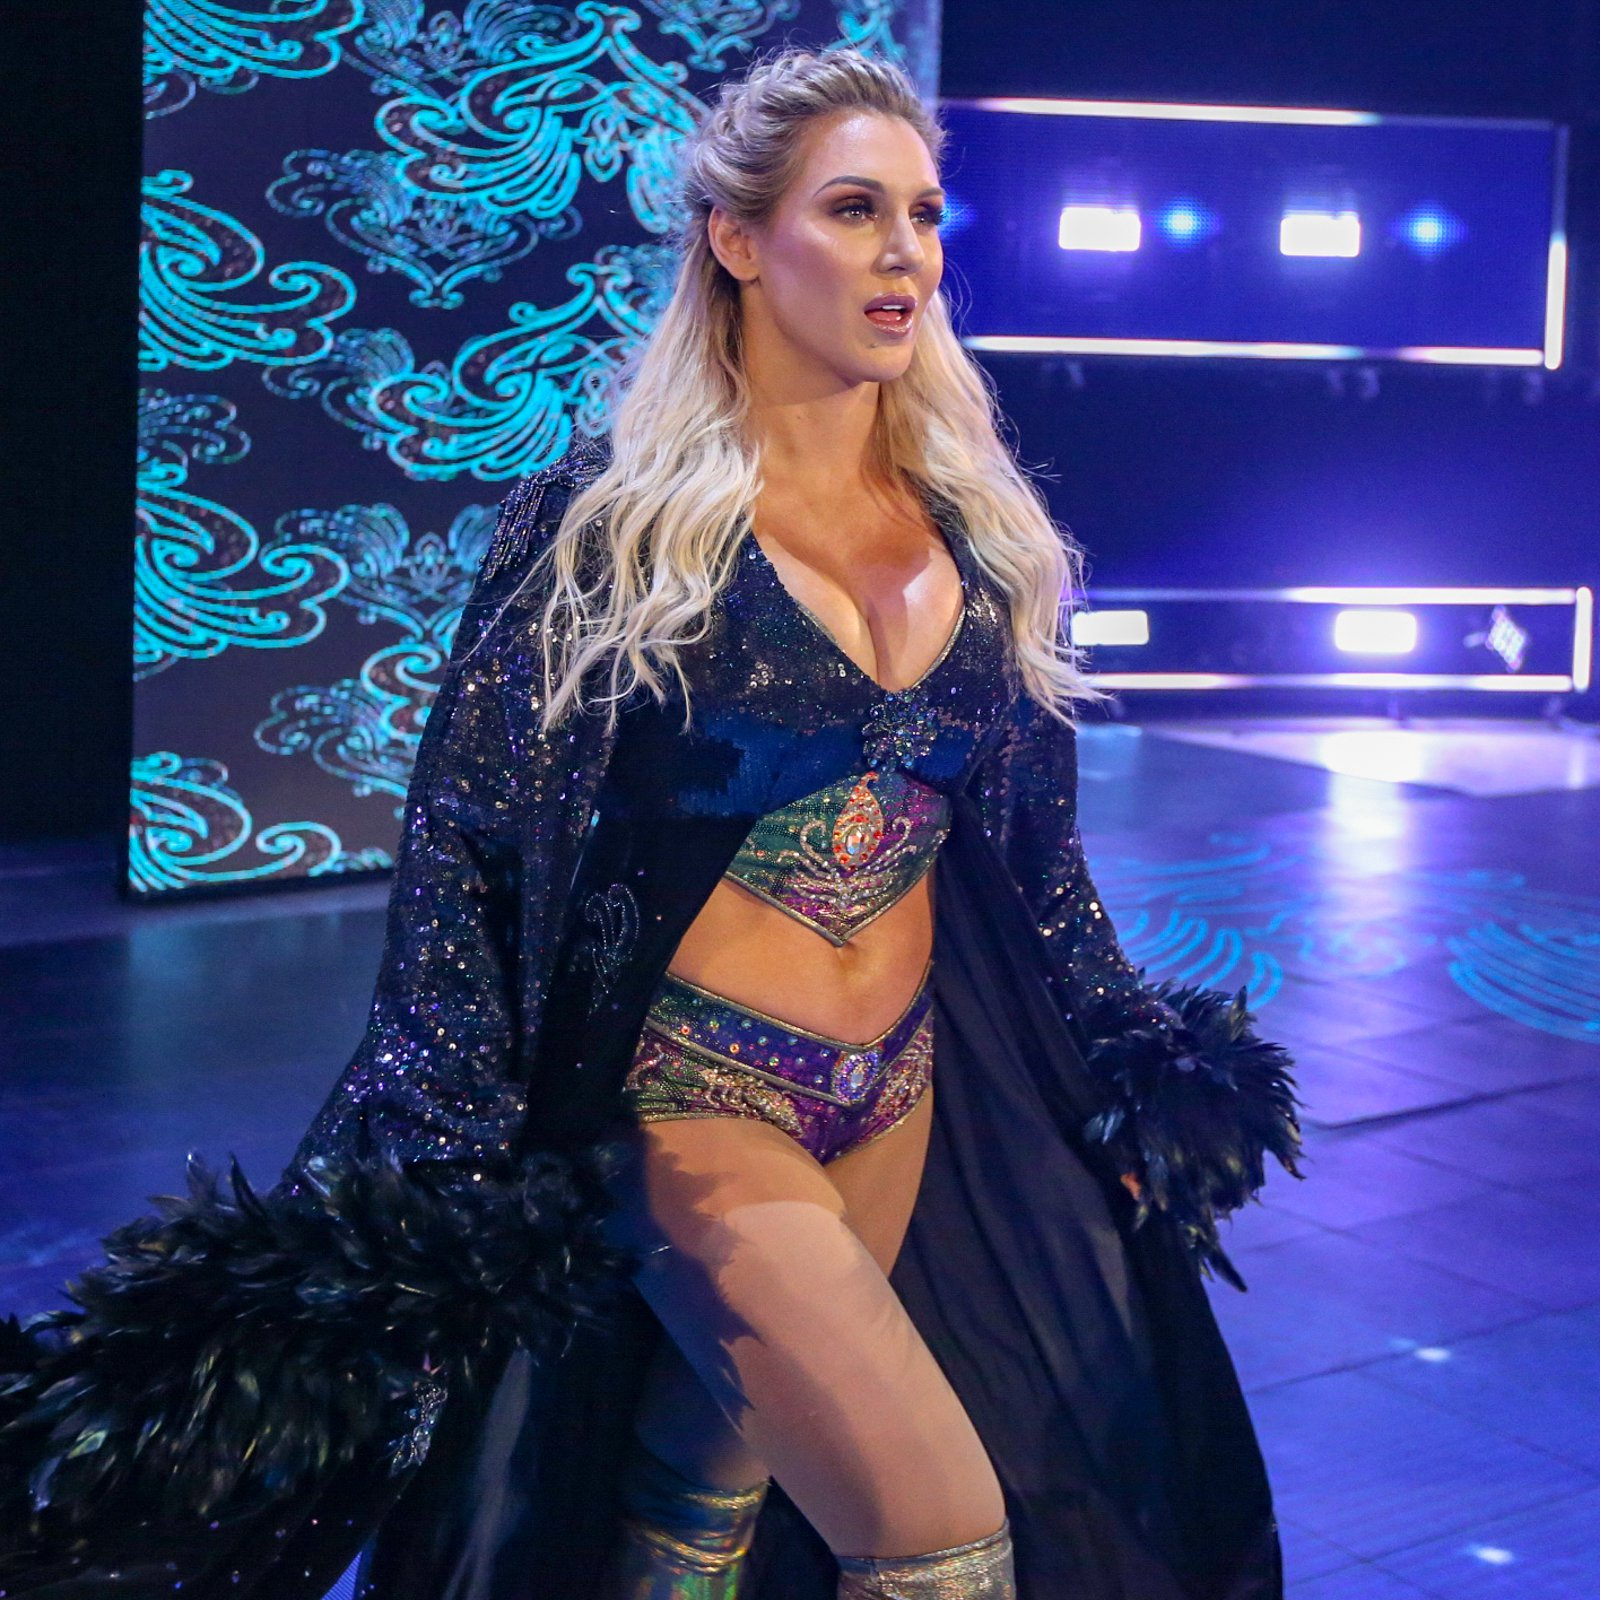 Up next, Charlotte Flair struts to the squared circle.